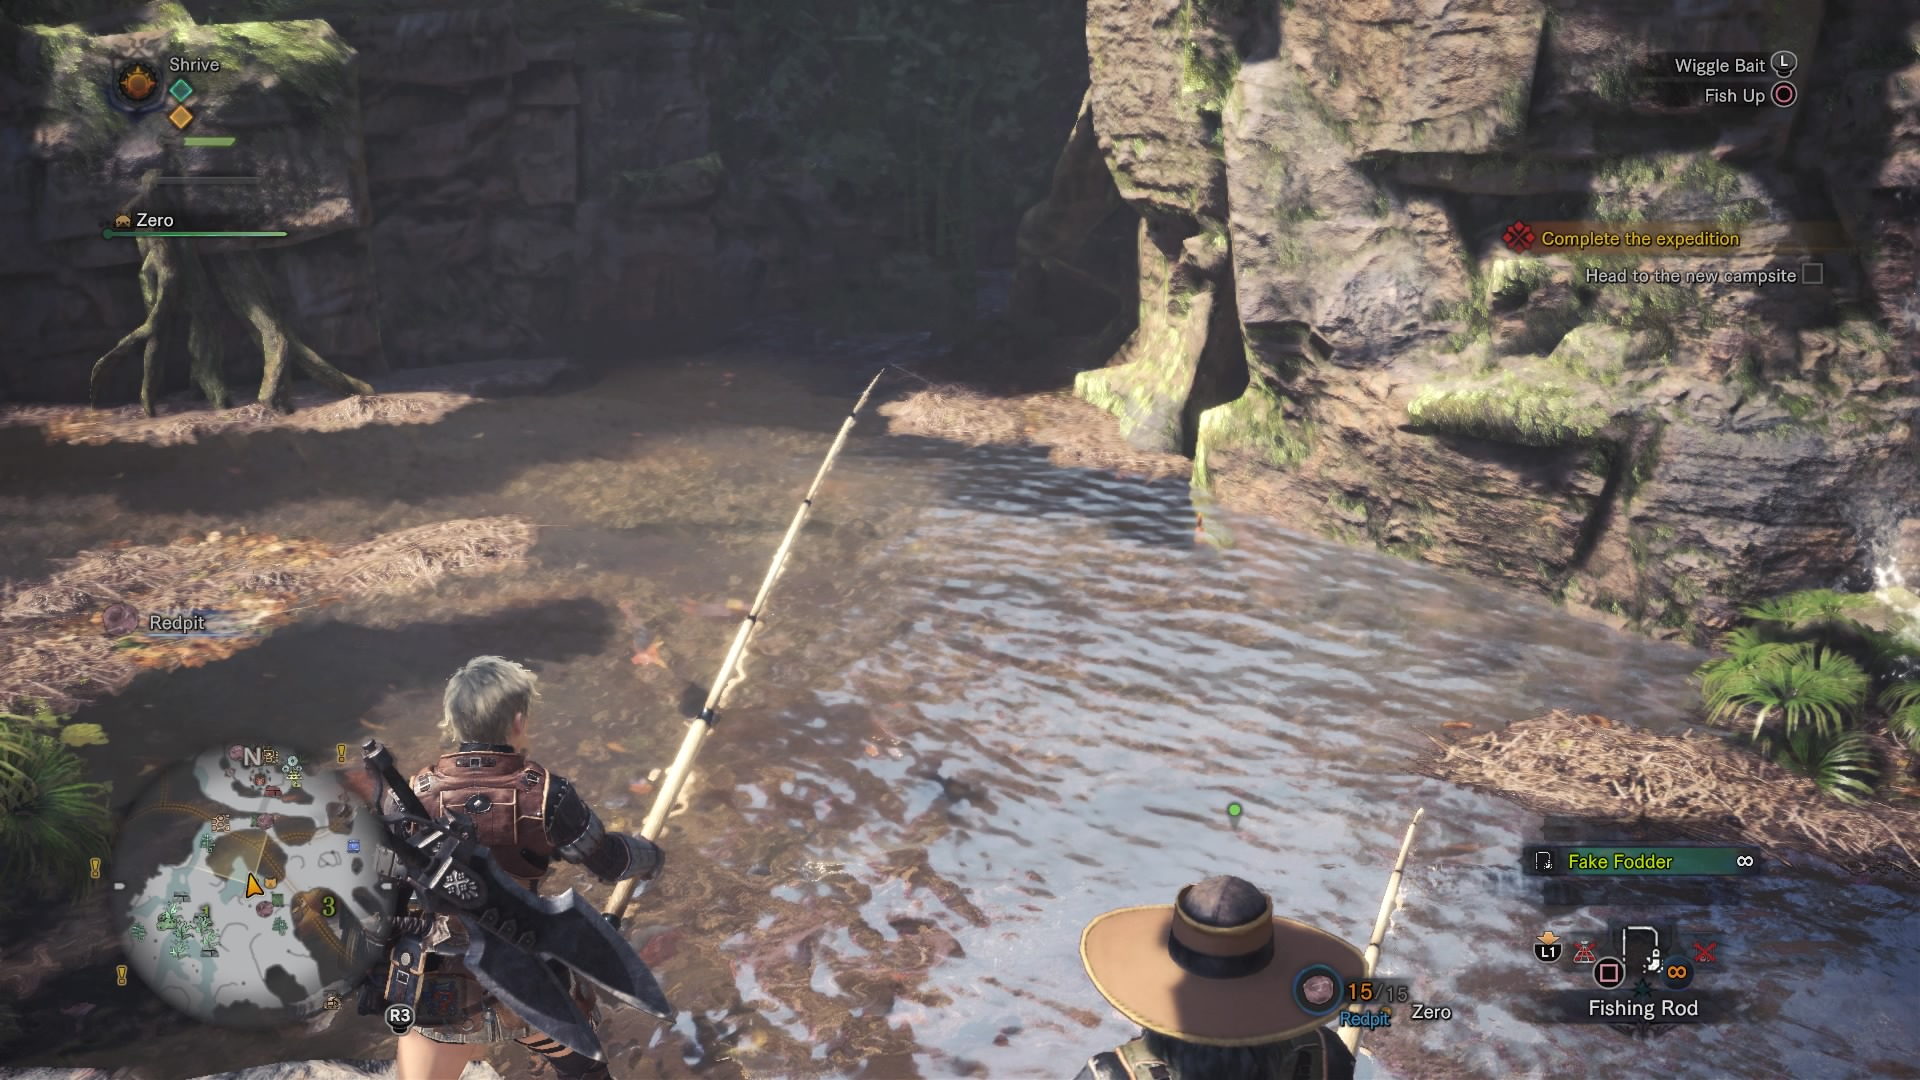 Monster hunter world how to catch prehistoric fish living the petricanths is an incredibly rare fish the rarest in the game and it only spawns in one singular spot solutioingenieria Image collections